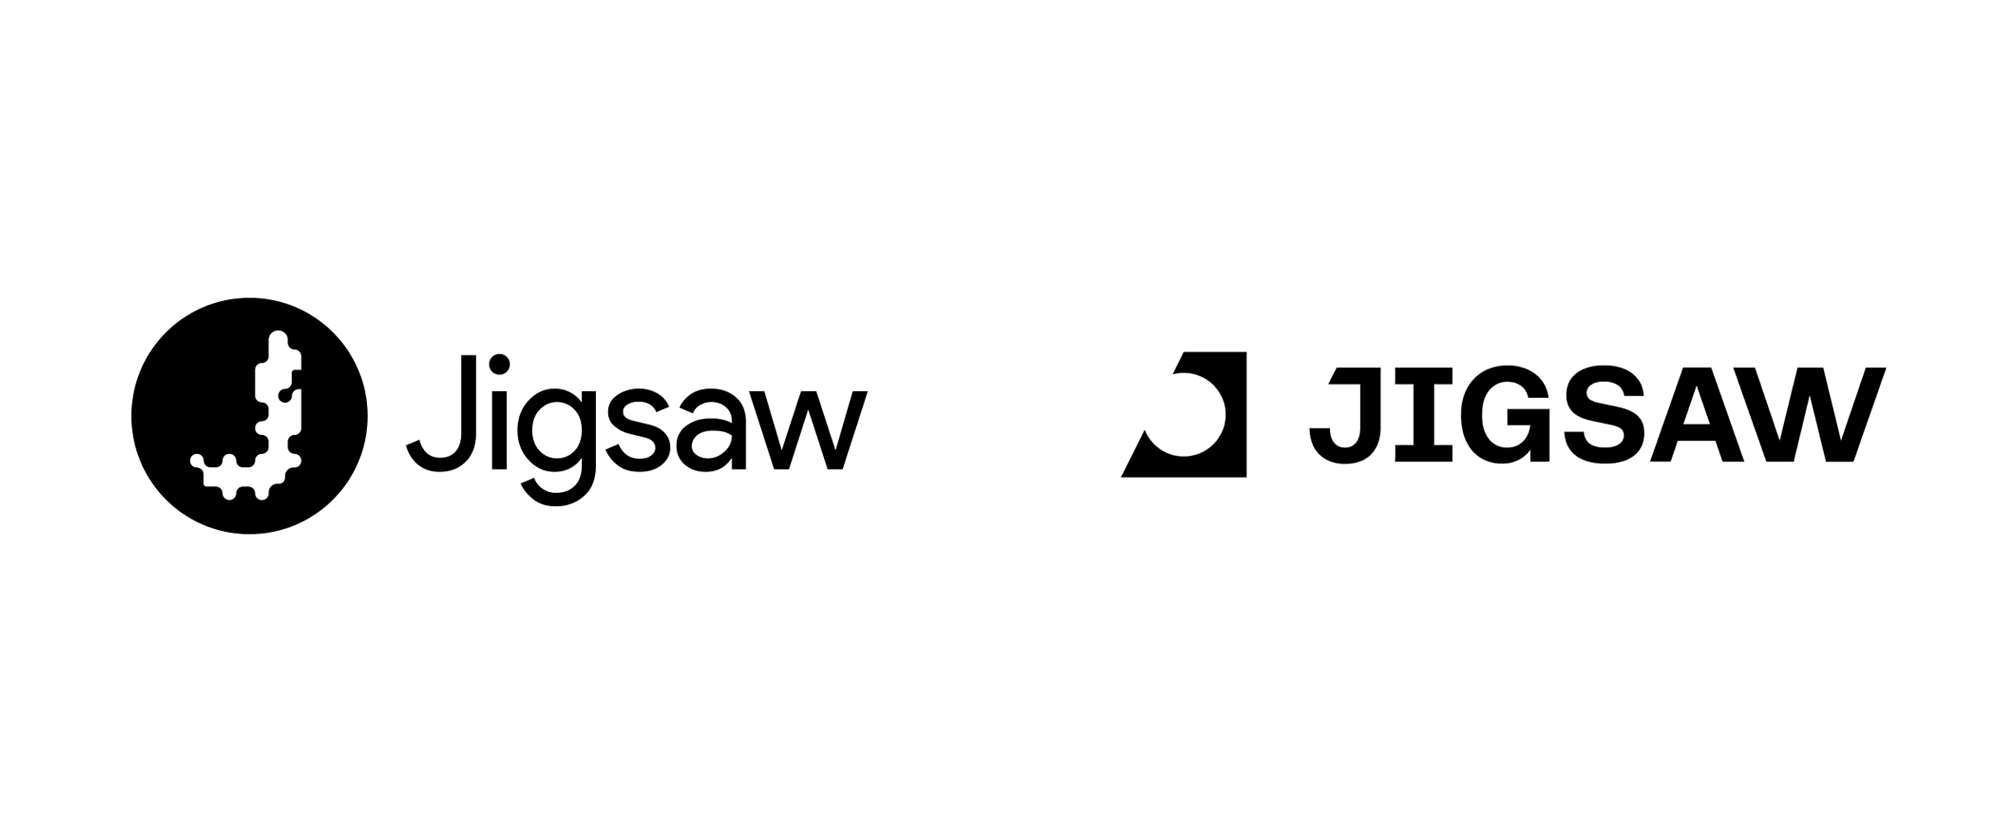 New Logo and Identity for Jigsaw by Upperquad